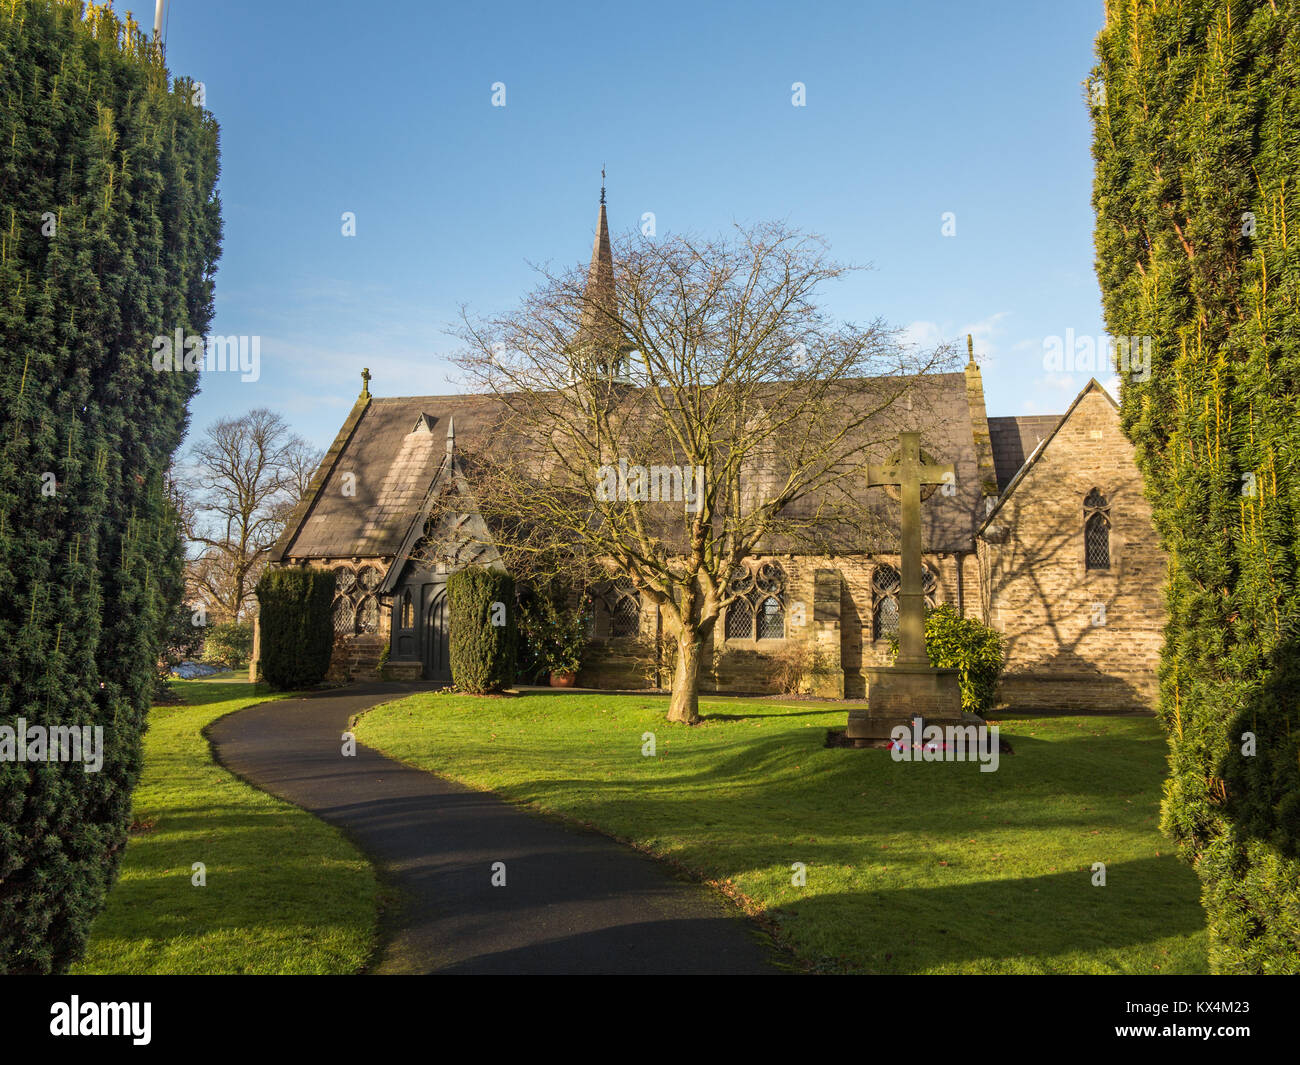 St Marks Church of England church in the Cheshire village of Dunham Massey greater Manchester - Stock Image